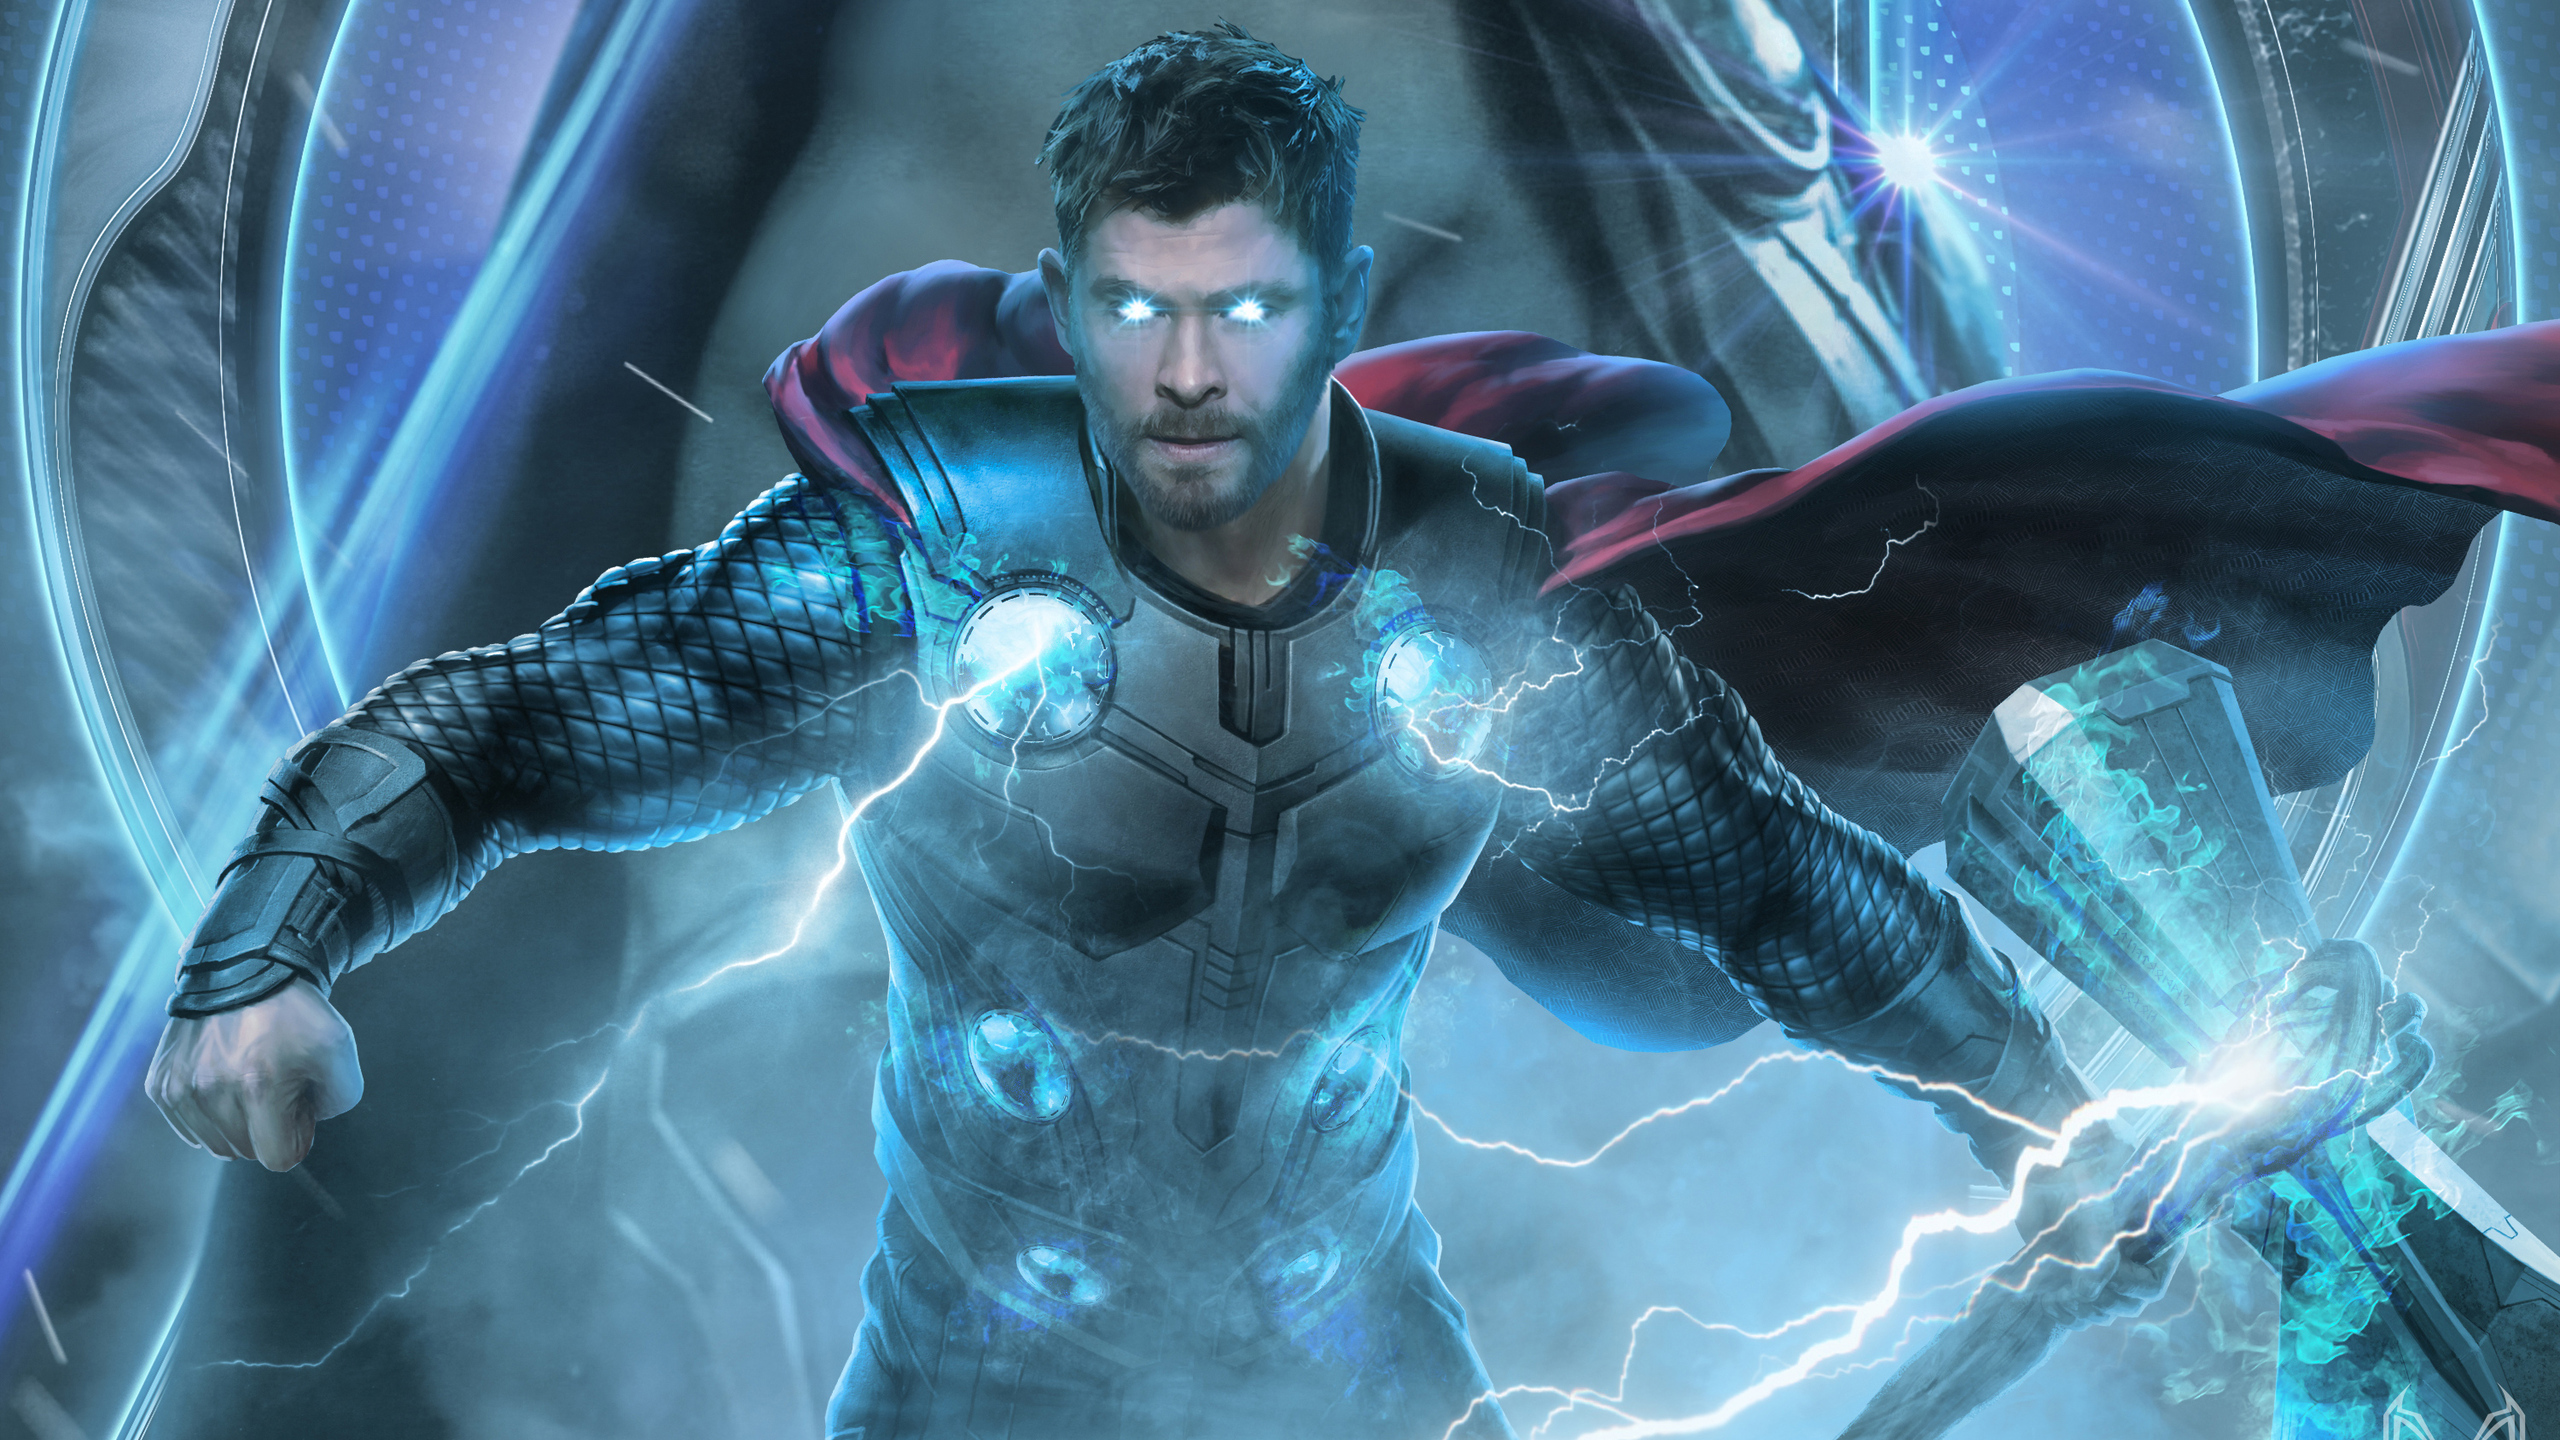 2560x1440 Thor Avengers End Game 2019 1440P Resolution HD ...